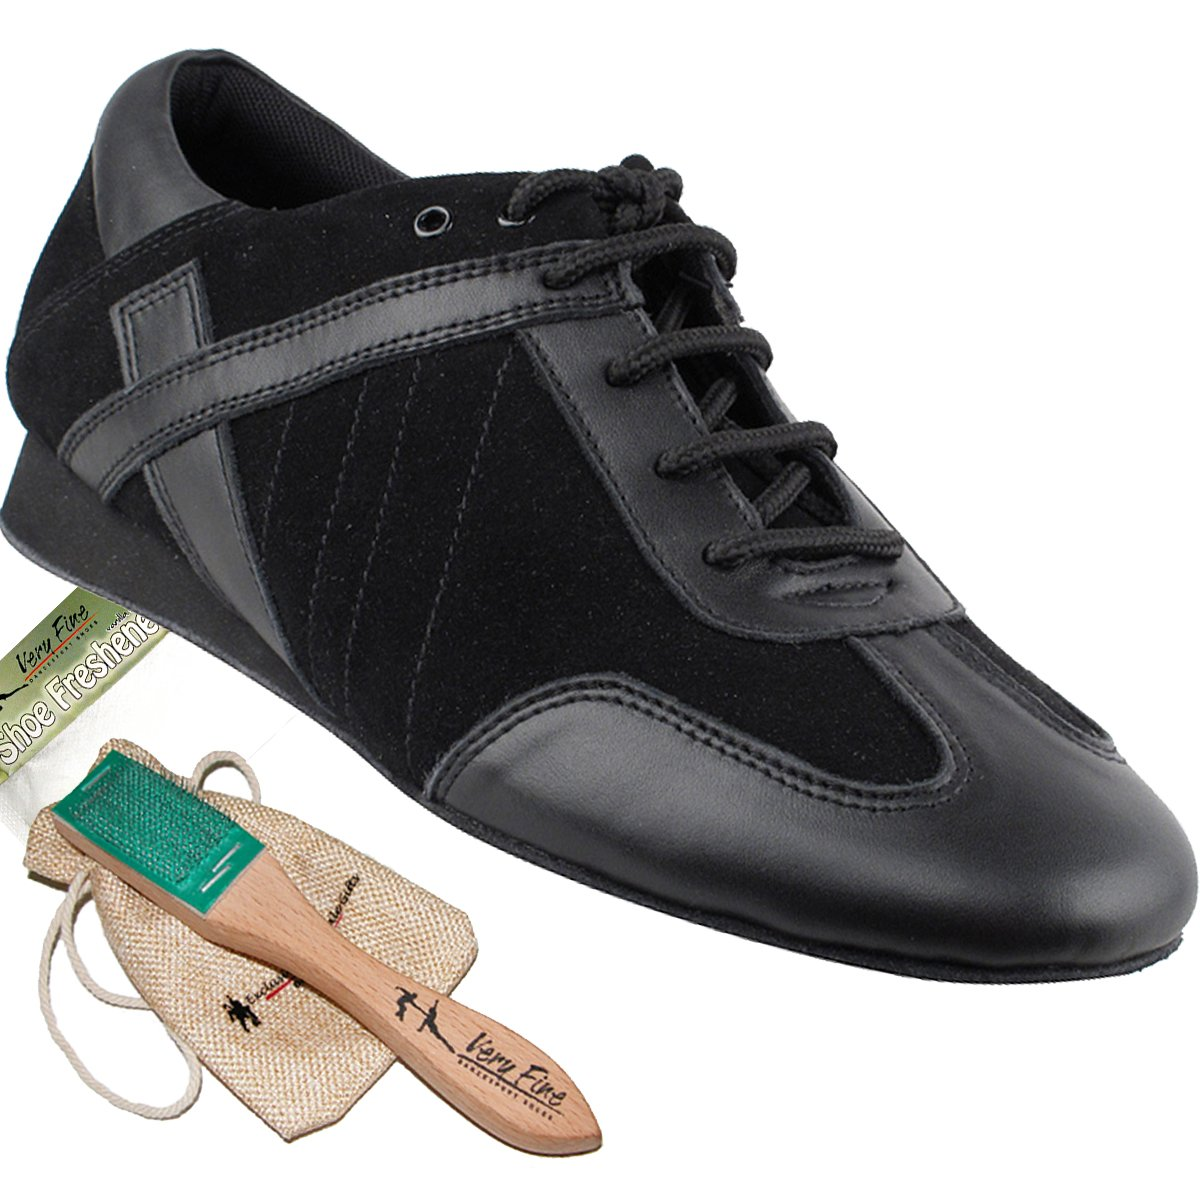 Men's Ballroom Latin Salsa Sneaker Dance Shoes Leather Black SERO106BBXEB Comfortable - Very Fine 8.5 M US [Bundle of 5]